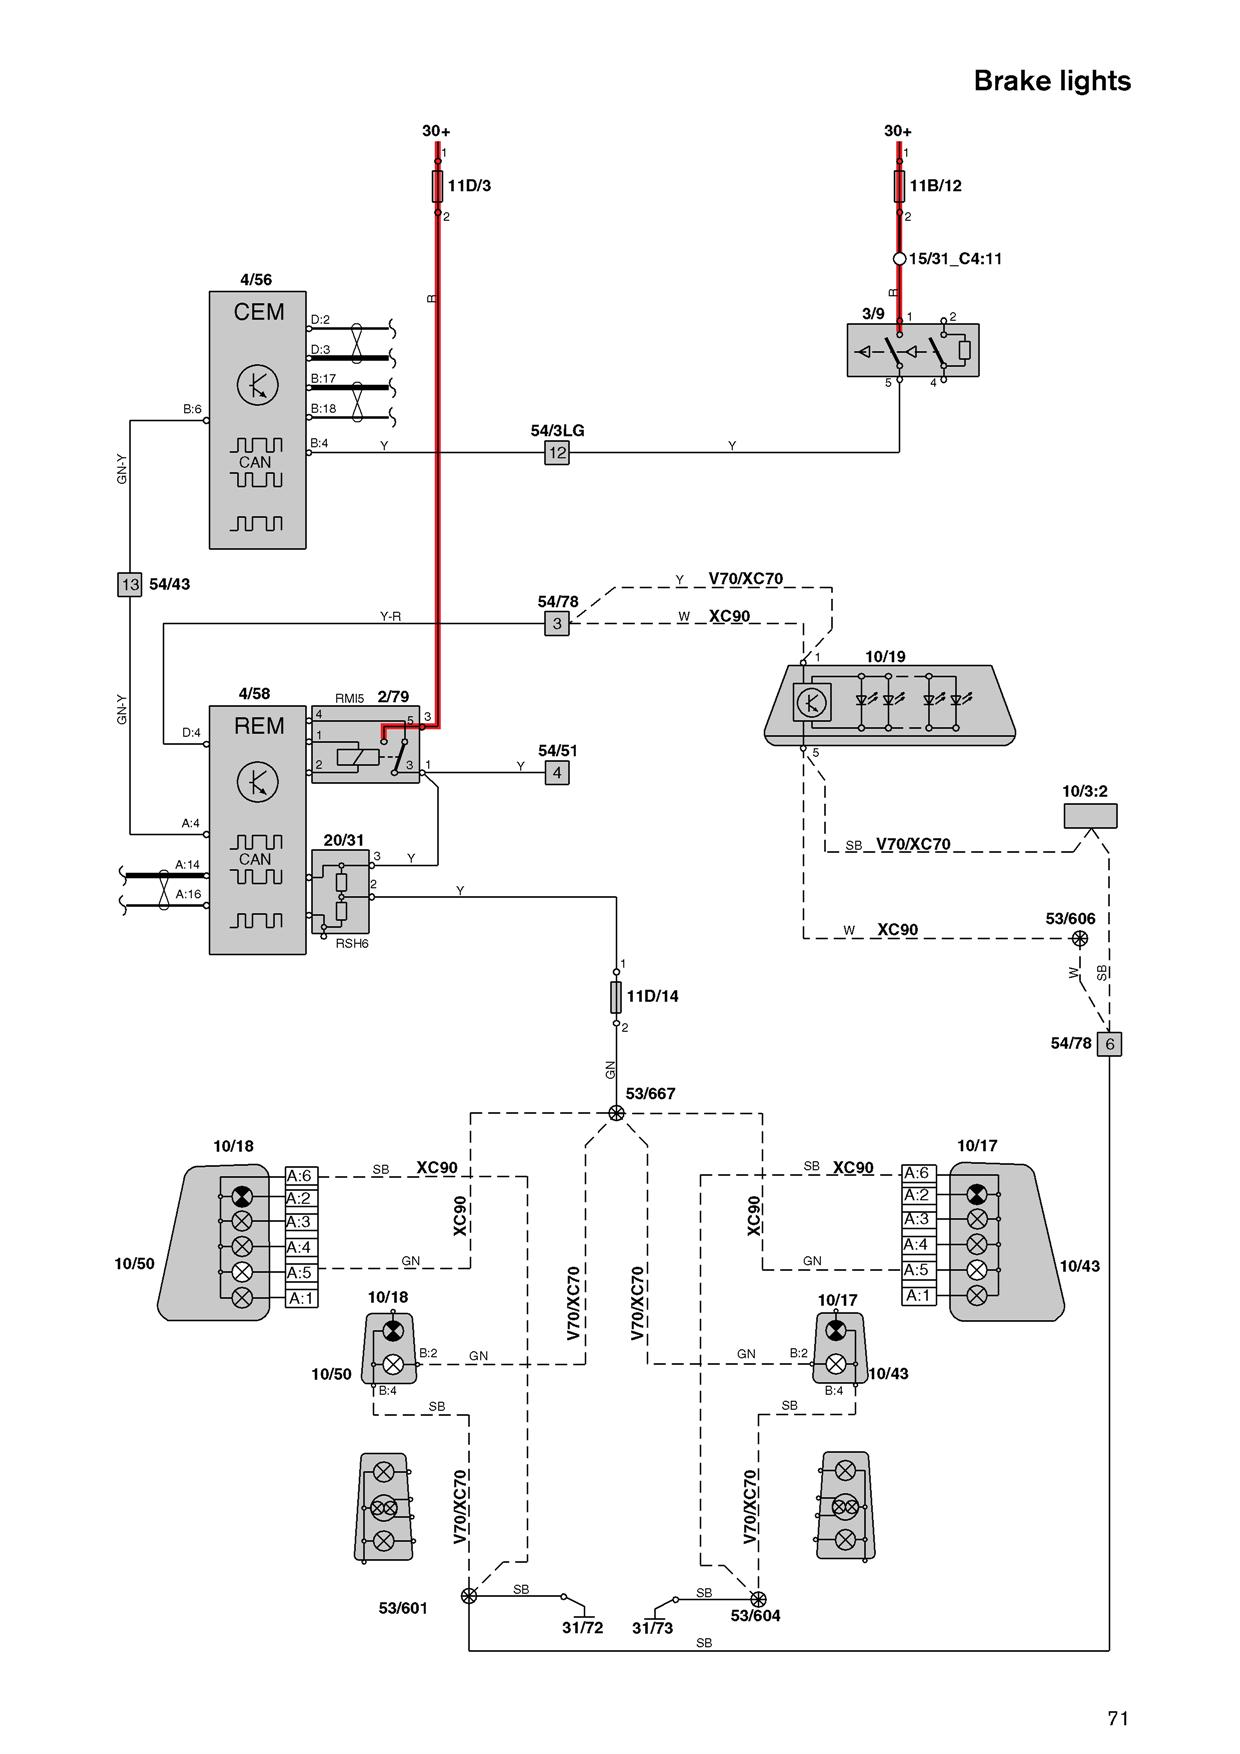 volvo s60 2004 wiring diagram wiring diagram 2004 volvo v70 radio wiring diagram schematics and diagrams s60 window